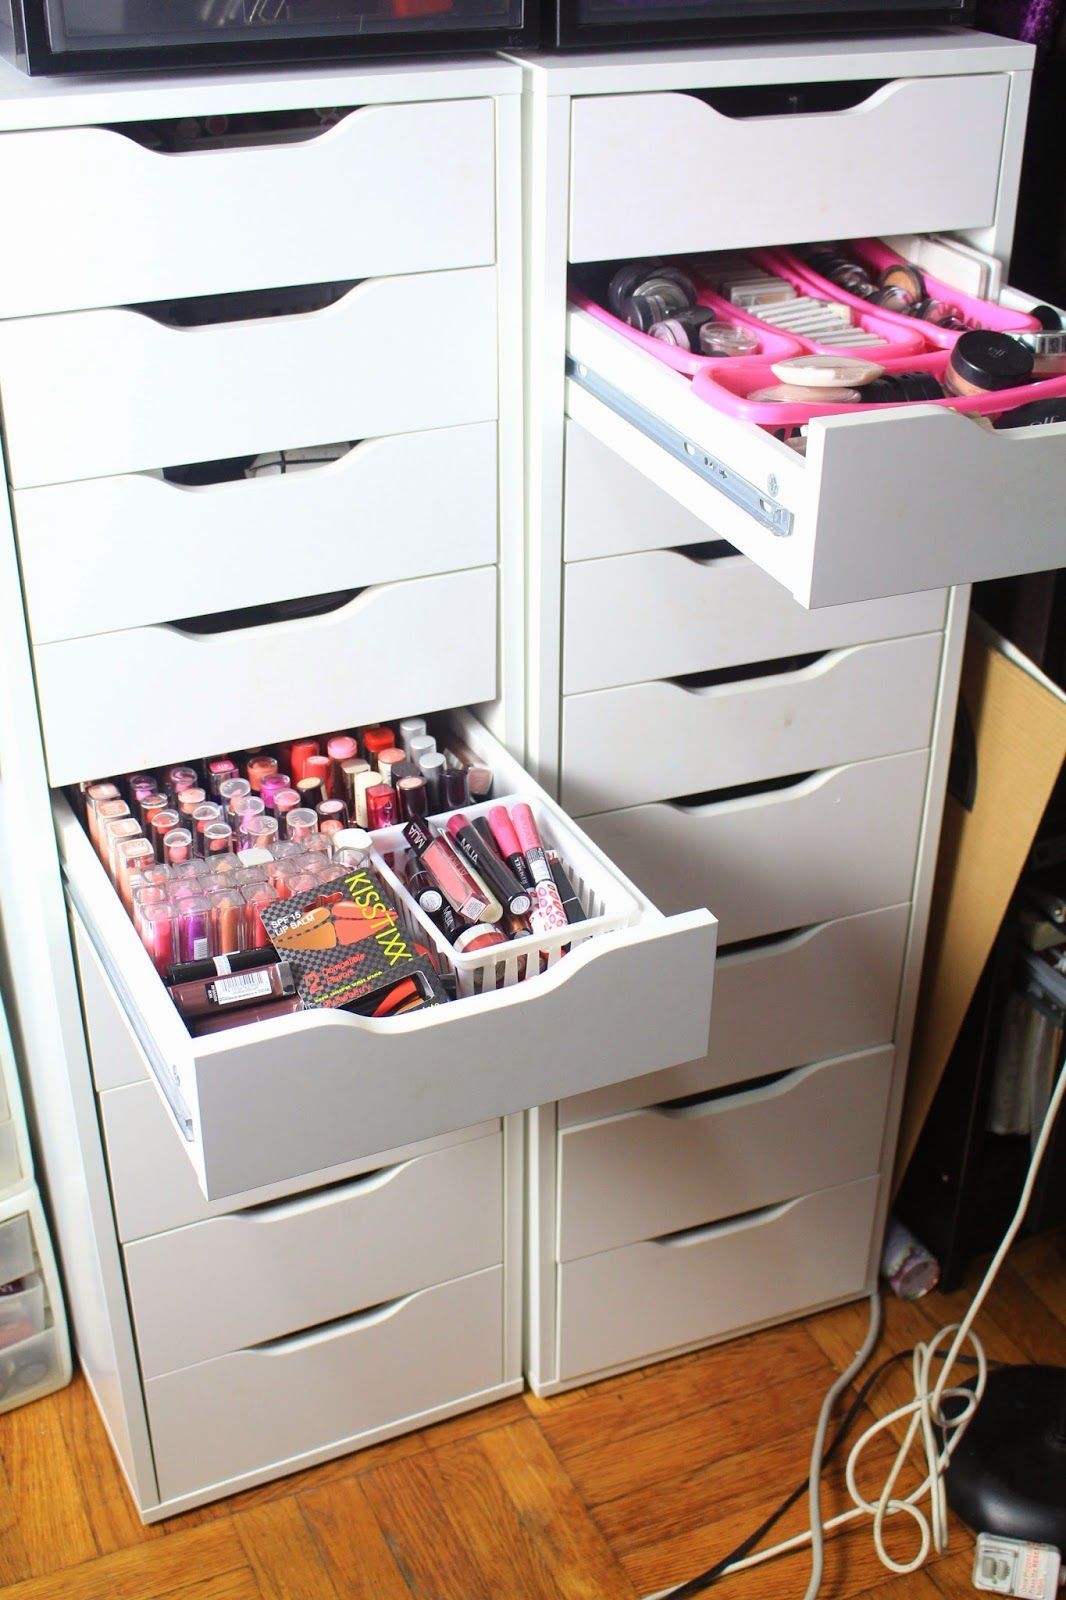 diva makeup queen diy ikea alex drawers for makeup collection storage get organized. Black Bedroom Furniture Sets. Home Design Ideas